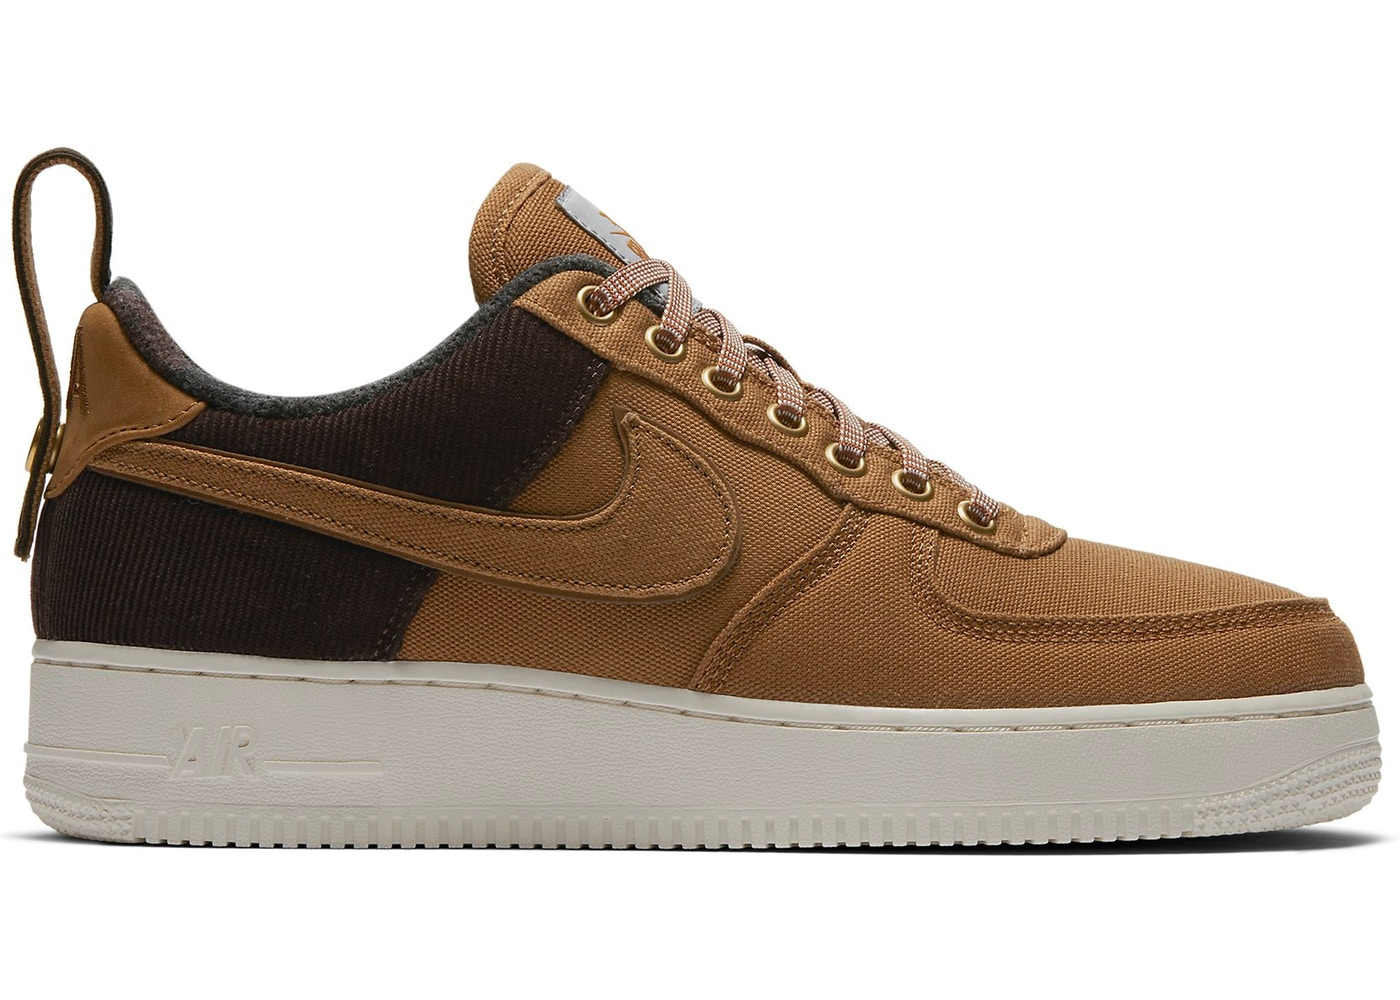 Nike Men's Air Force 1 07 Premium Low X Carhartt WIP (Ale